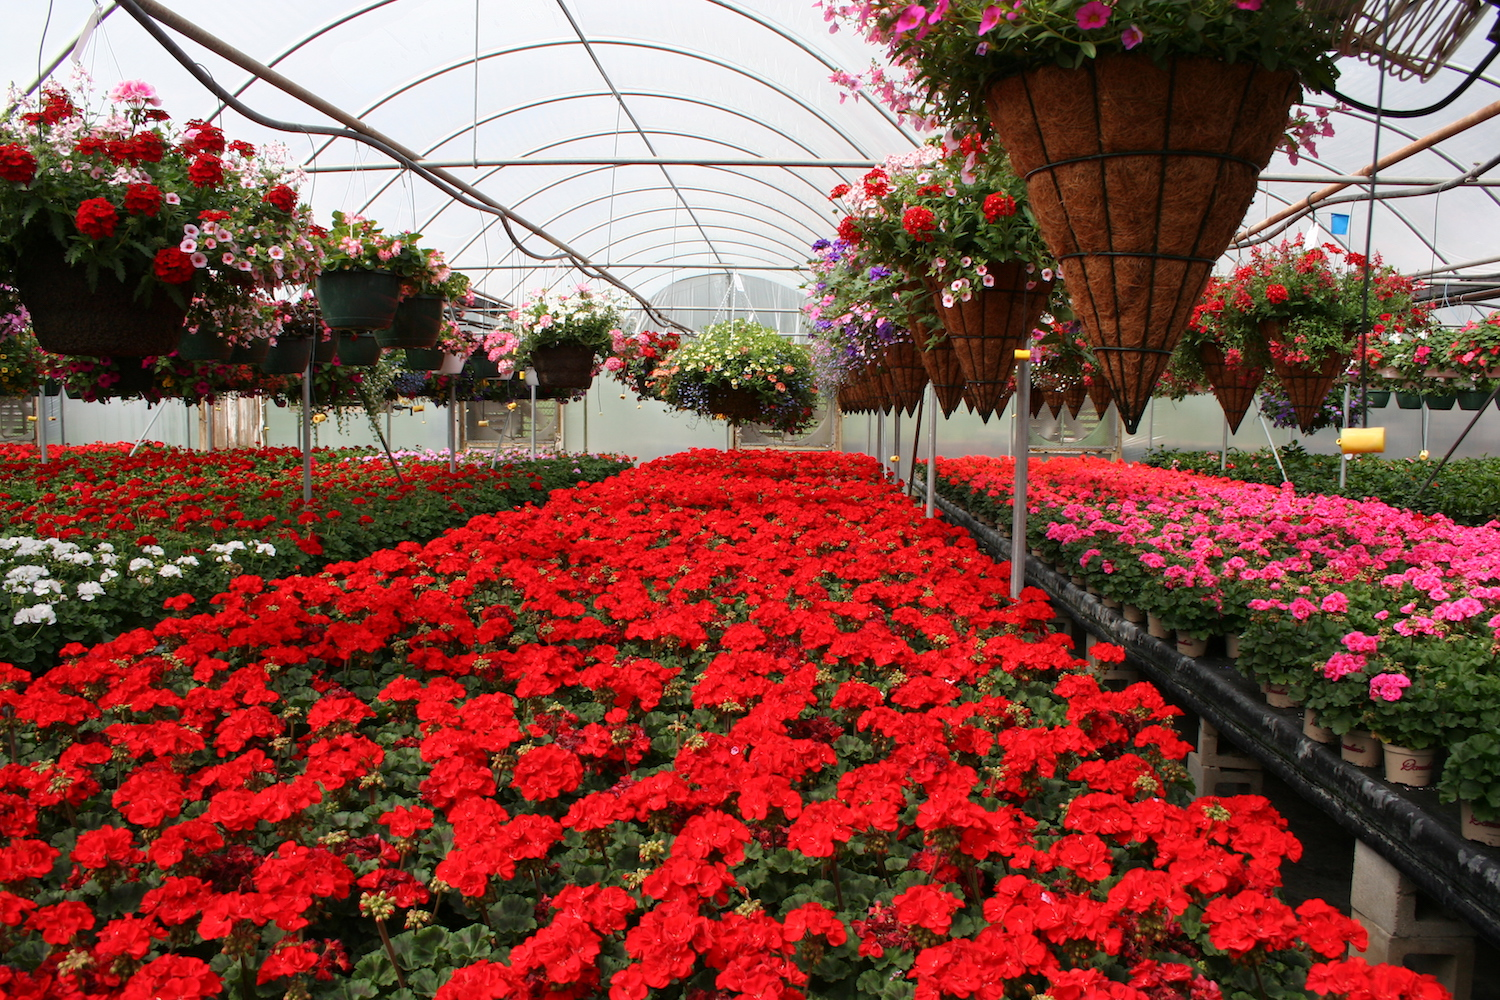 red geraniums in large number